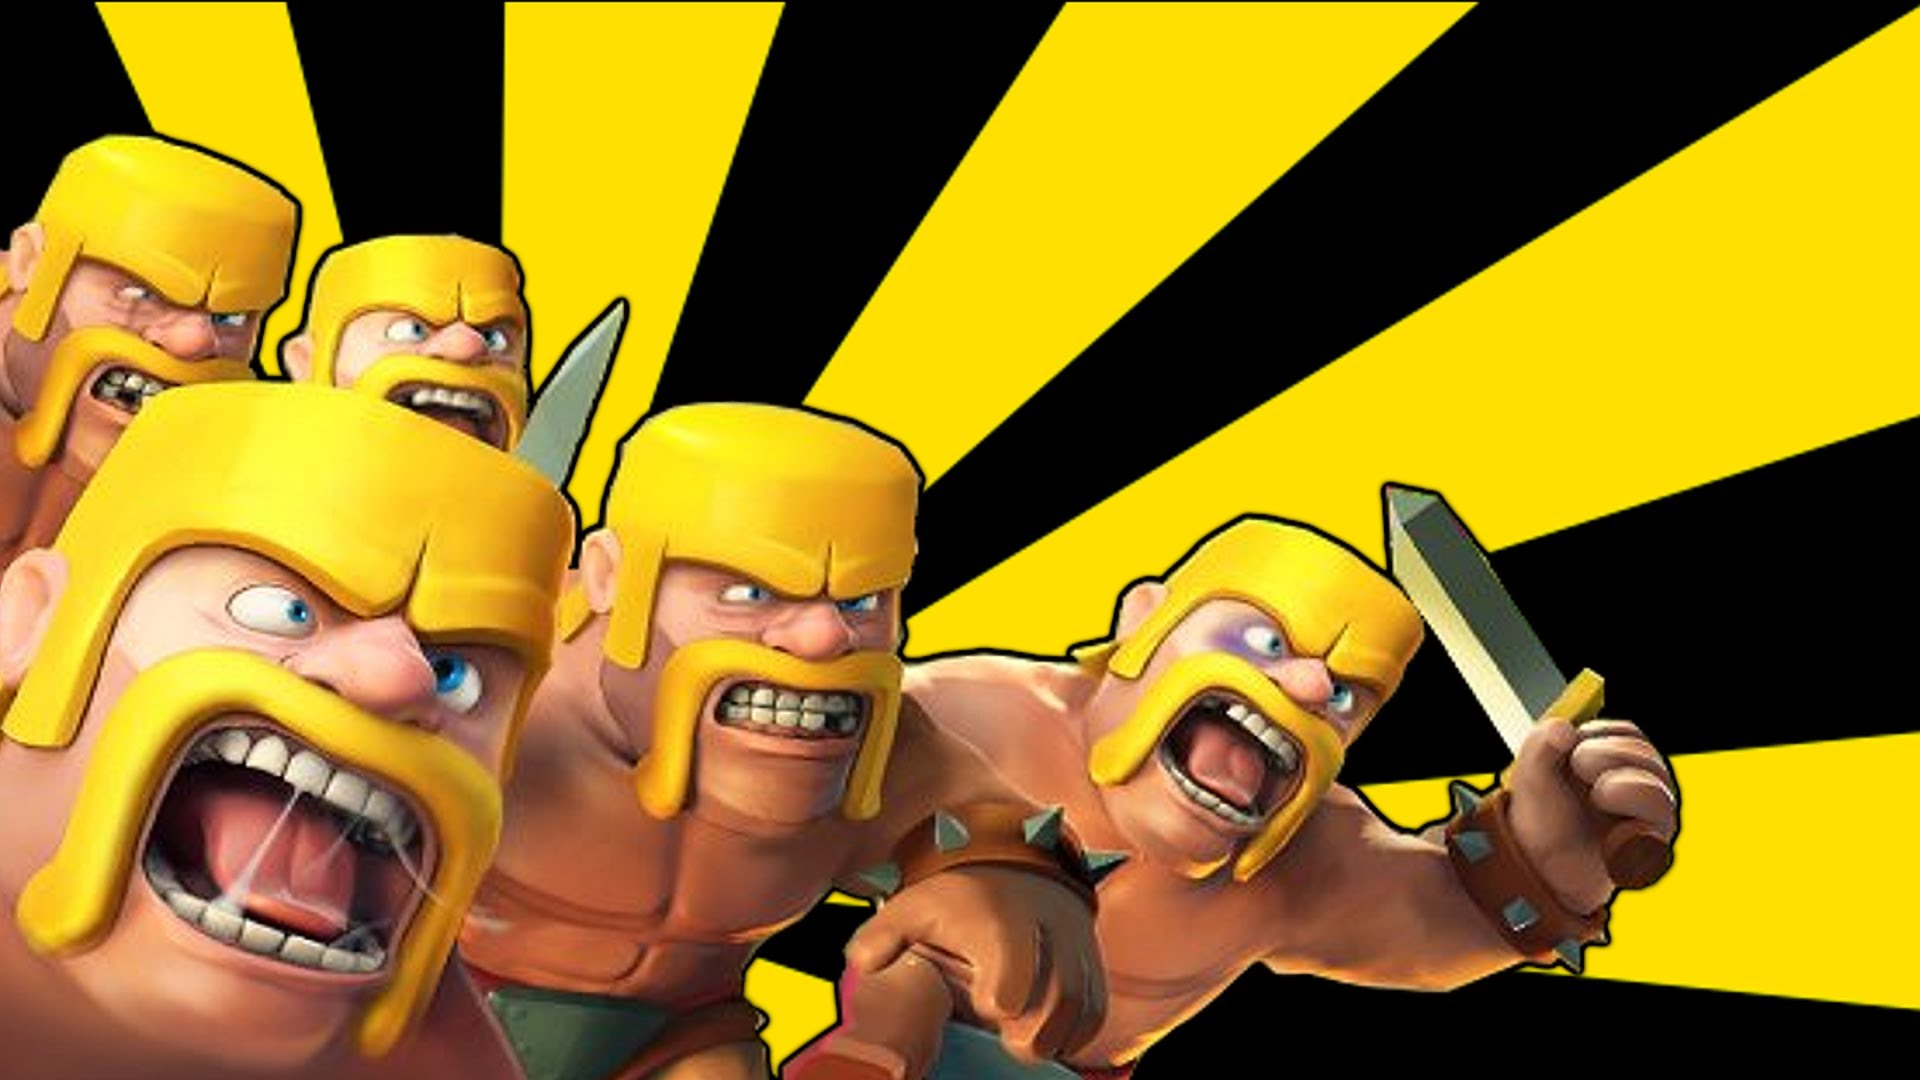 Barbarian Clash Of Clans Hd Hd Games 4k Wallpapers: Clash Of Clans Barbarian HD Wallpapers